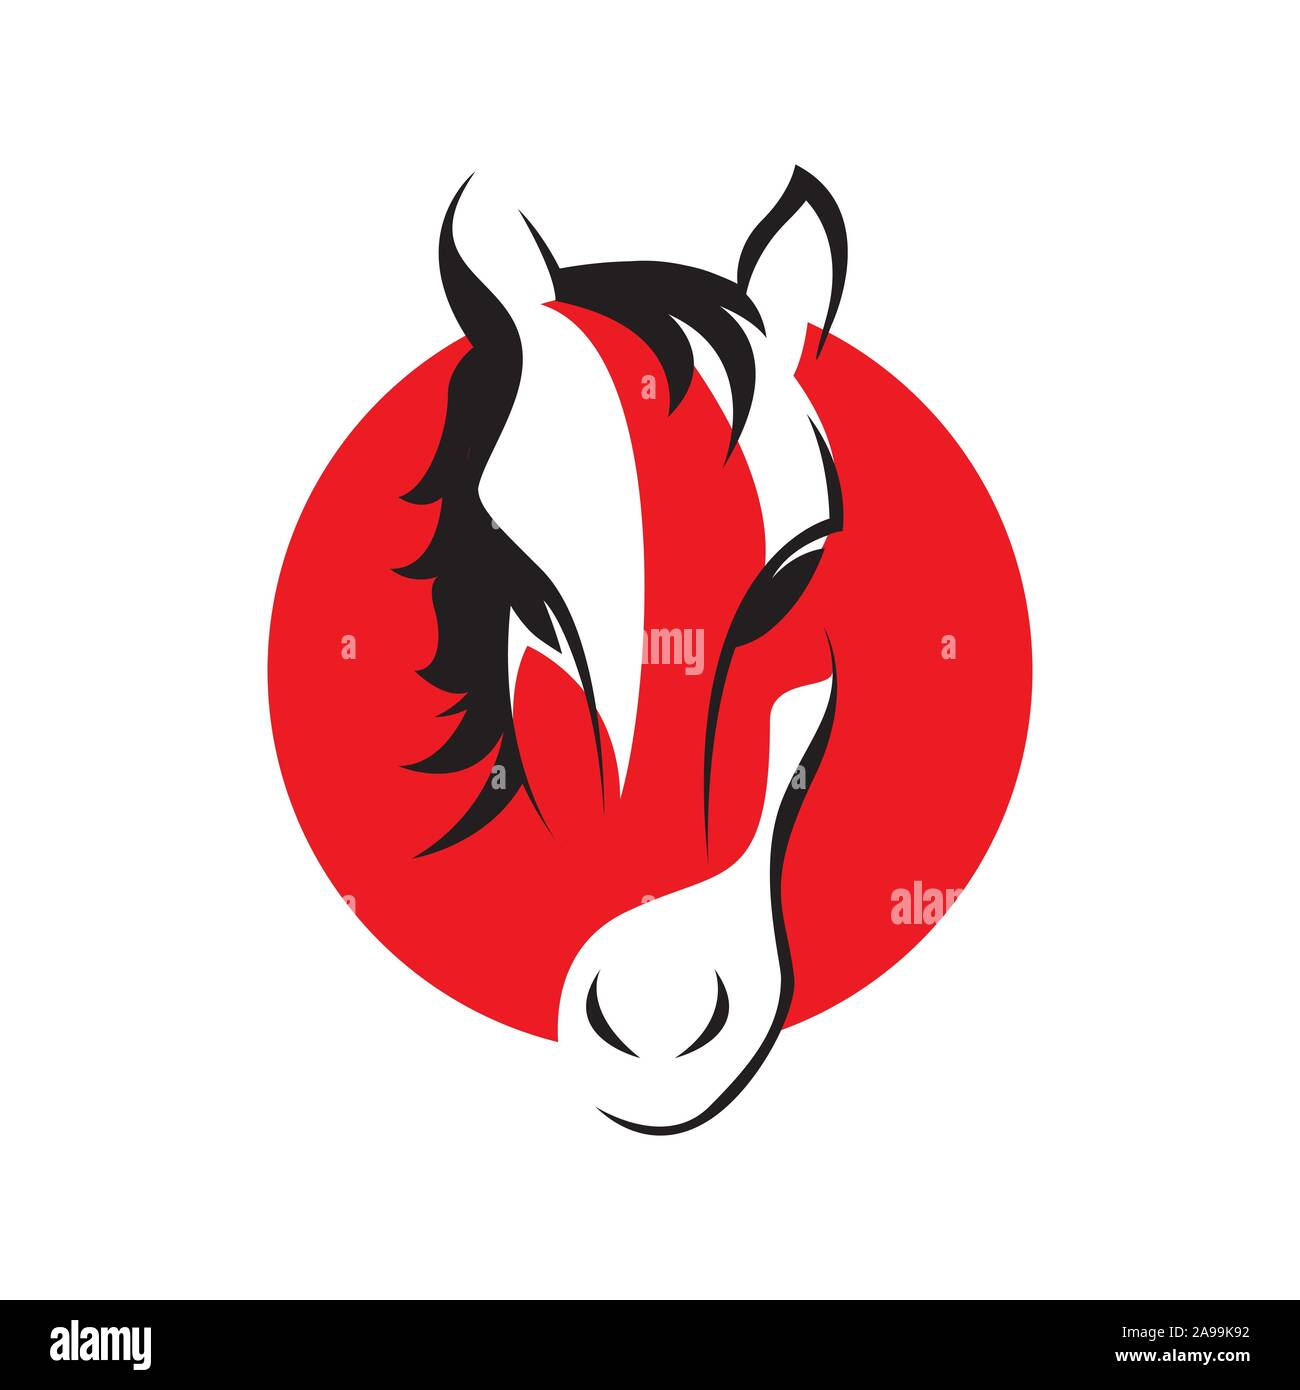 Emblem Of Red Horse Head Logo Template Vector Illustration Design Stock Vector Image Art Alamy